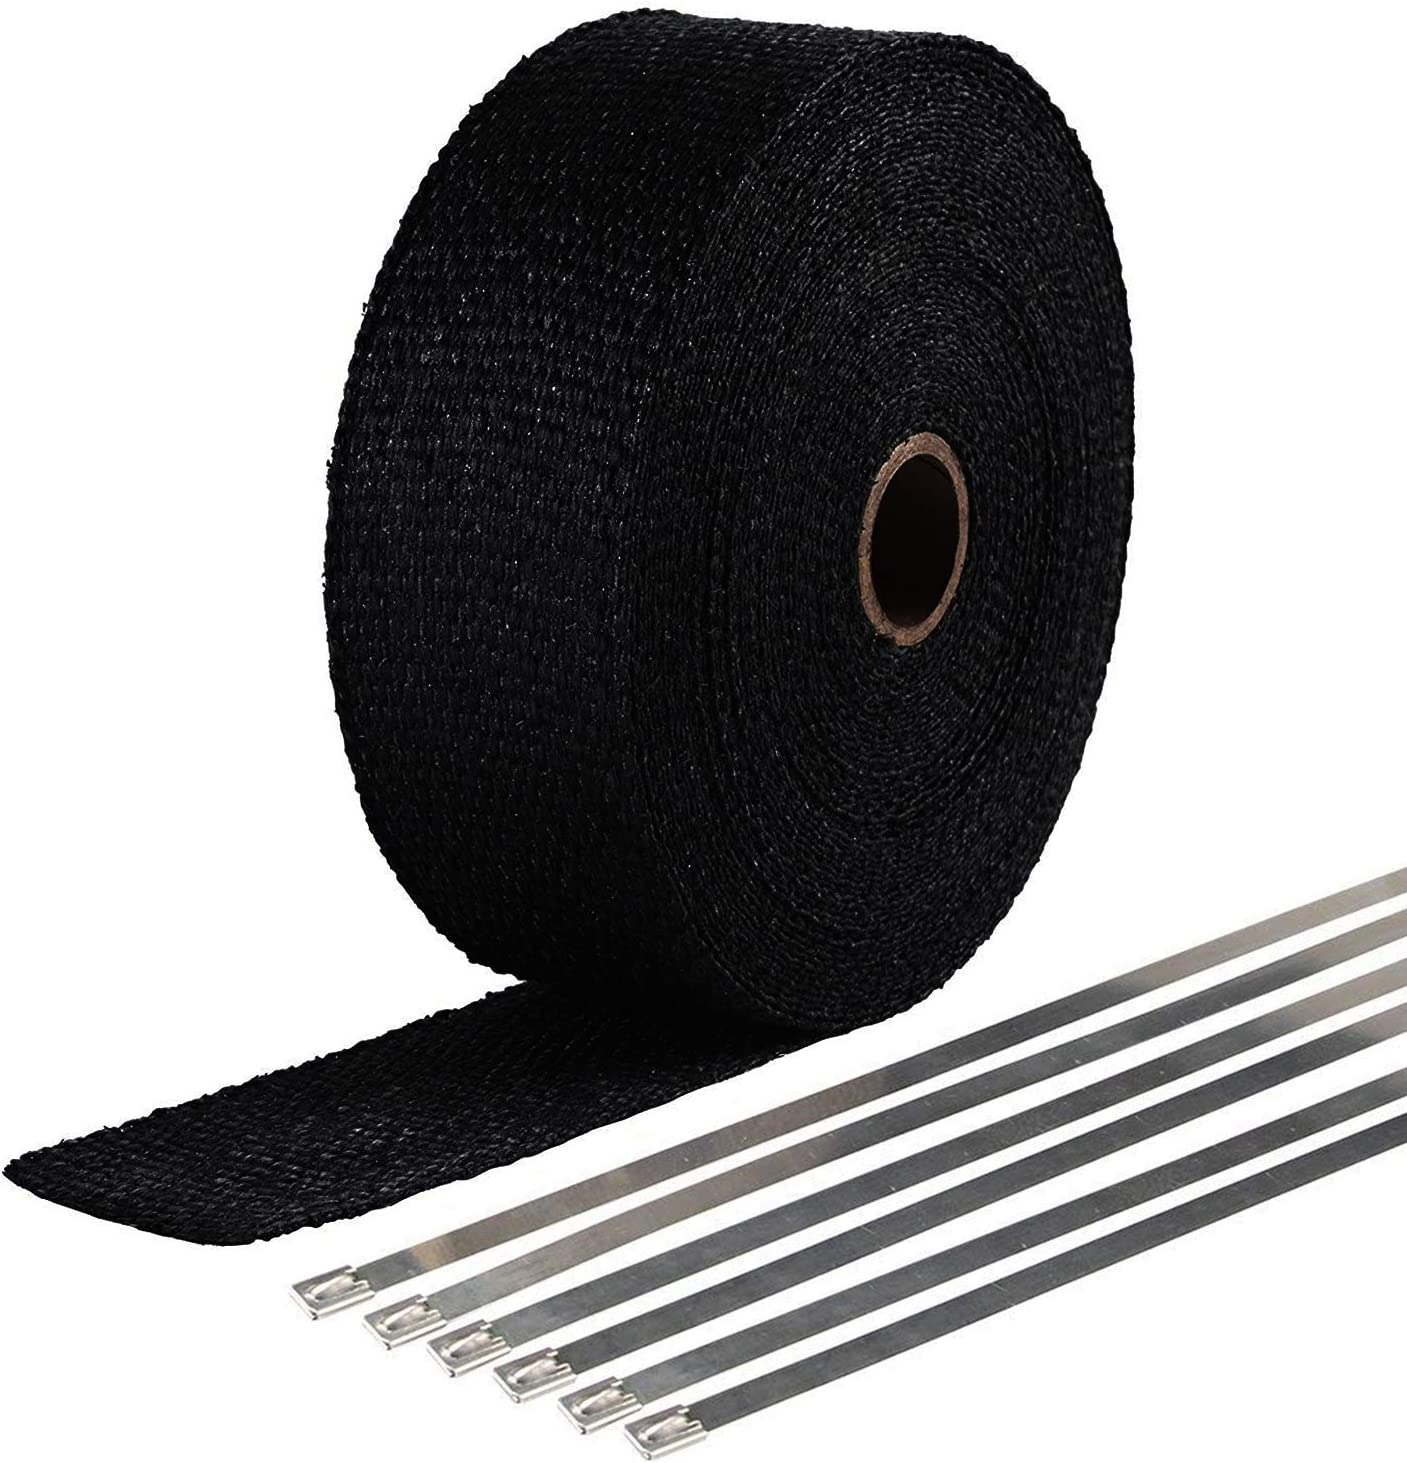 4 x 25ft Roll VViViD Black Fiberglass Heat Shielding Exhaust Wrap Roll Including 10 Free Stainless Steel Locking Zip Ties